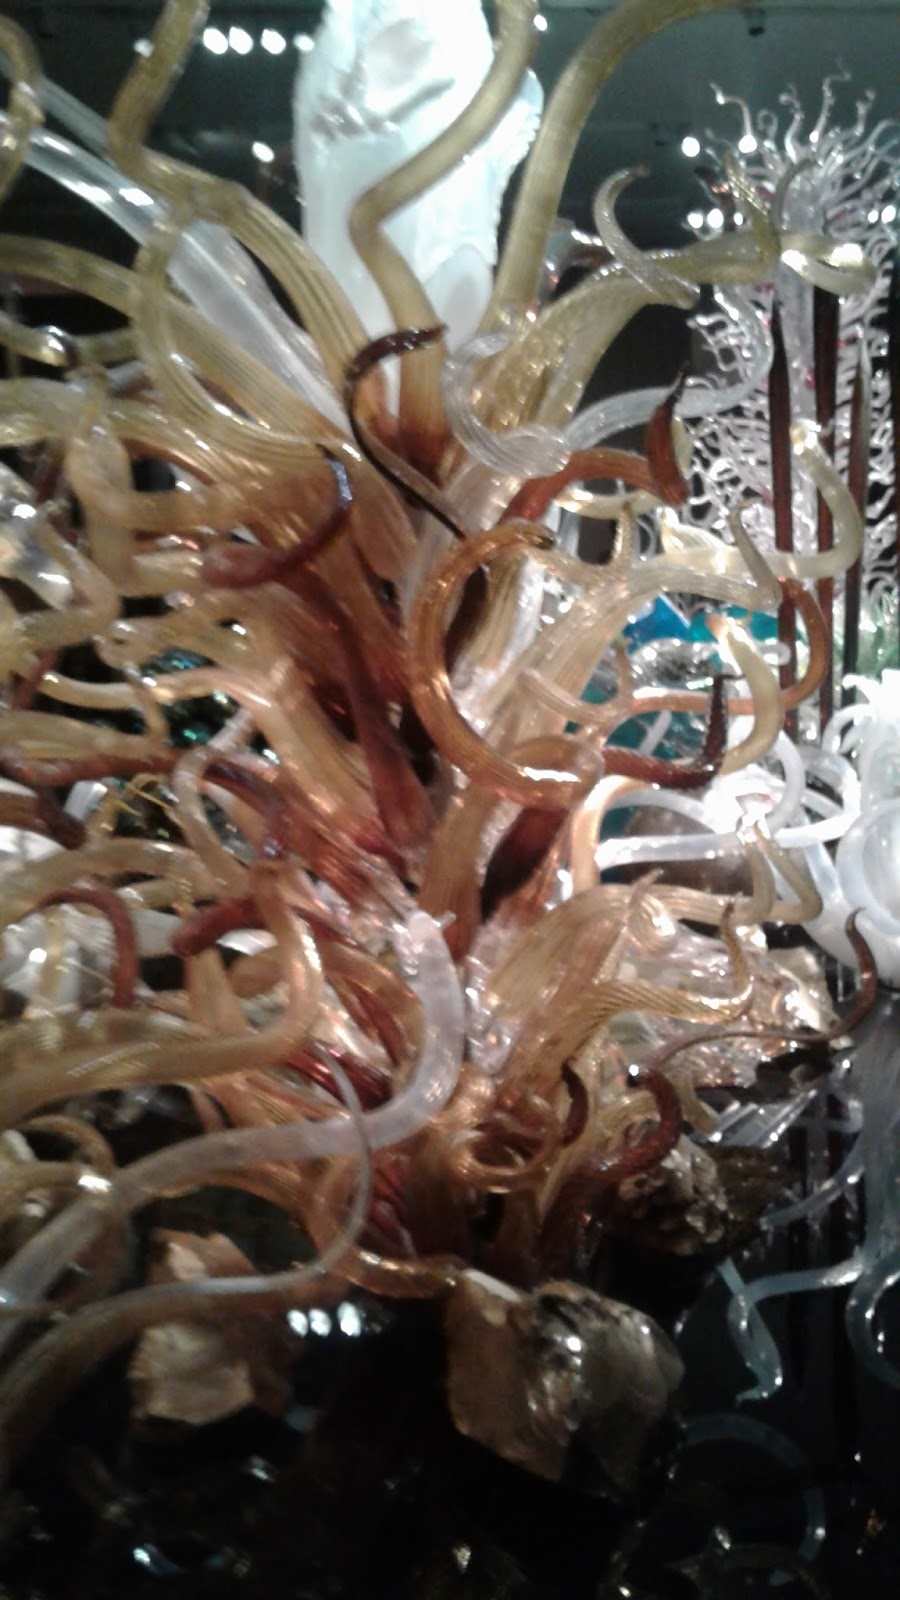 Number 16 Dale Chihuly Glass Sculptures At The Royal